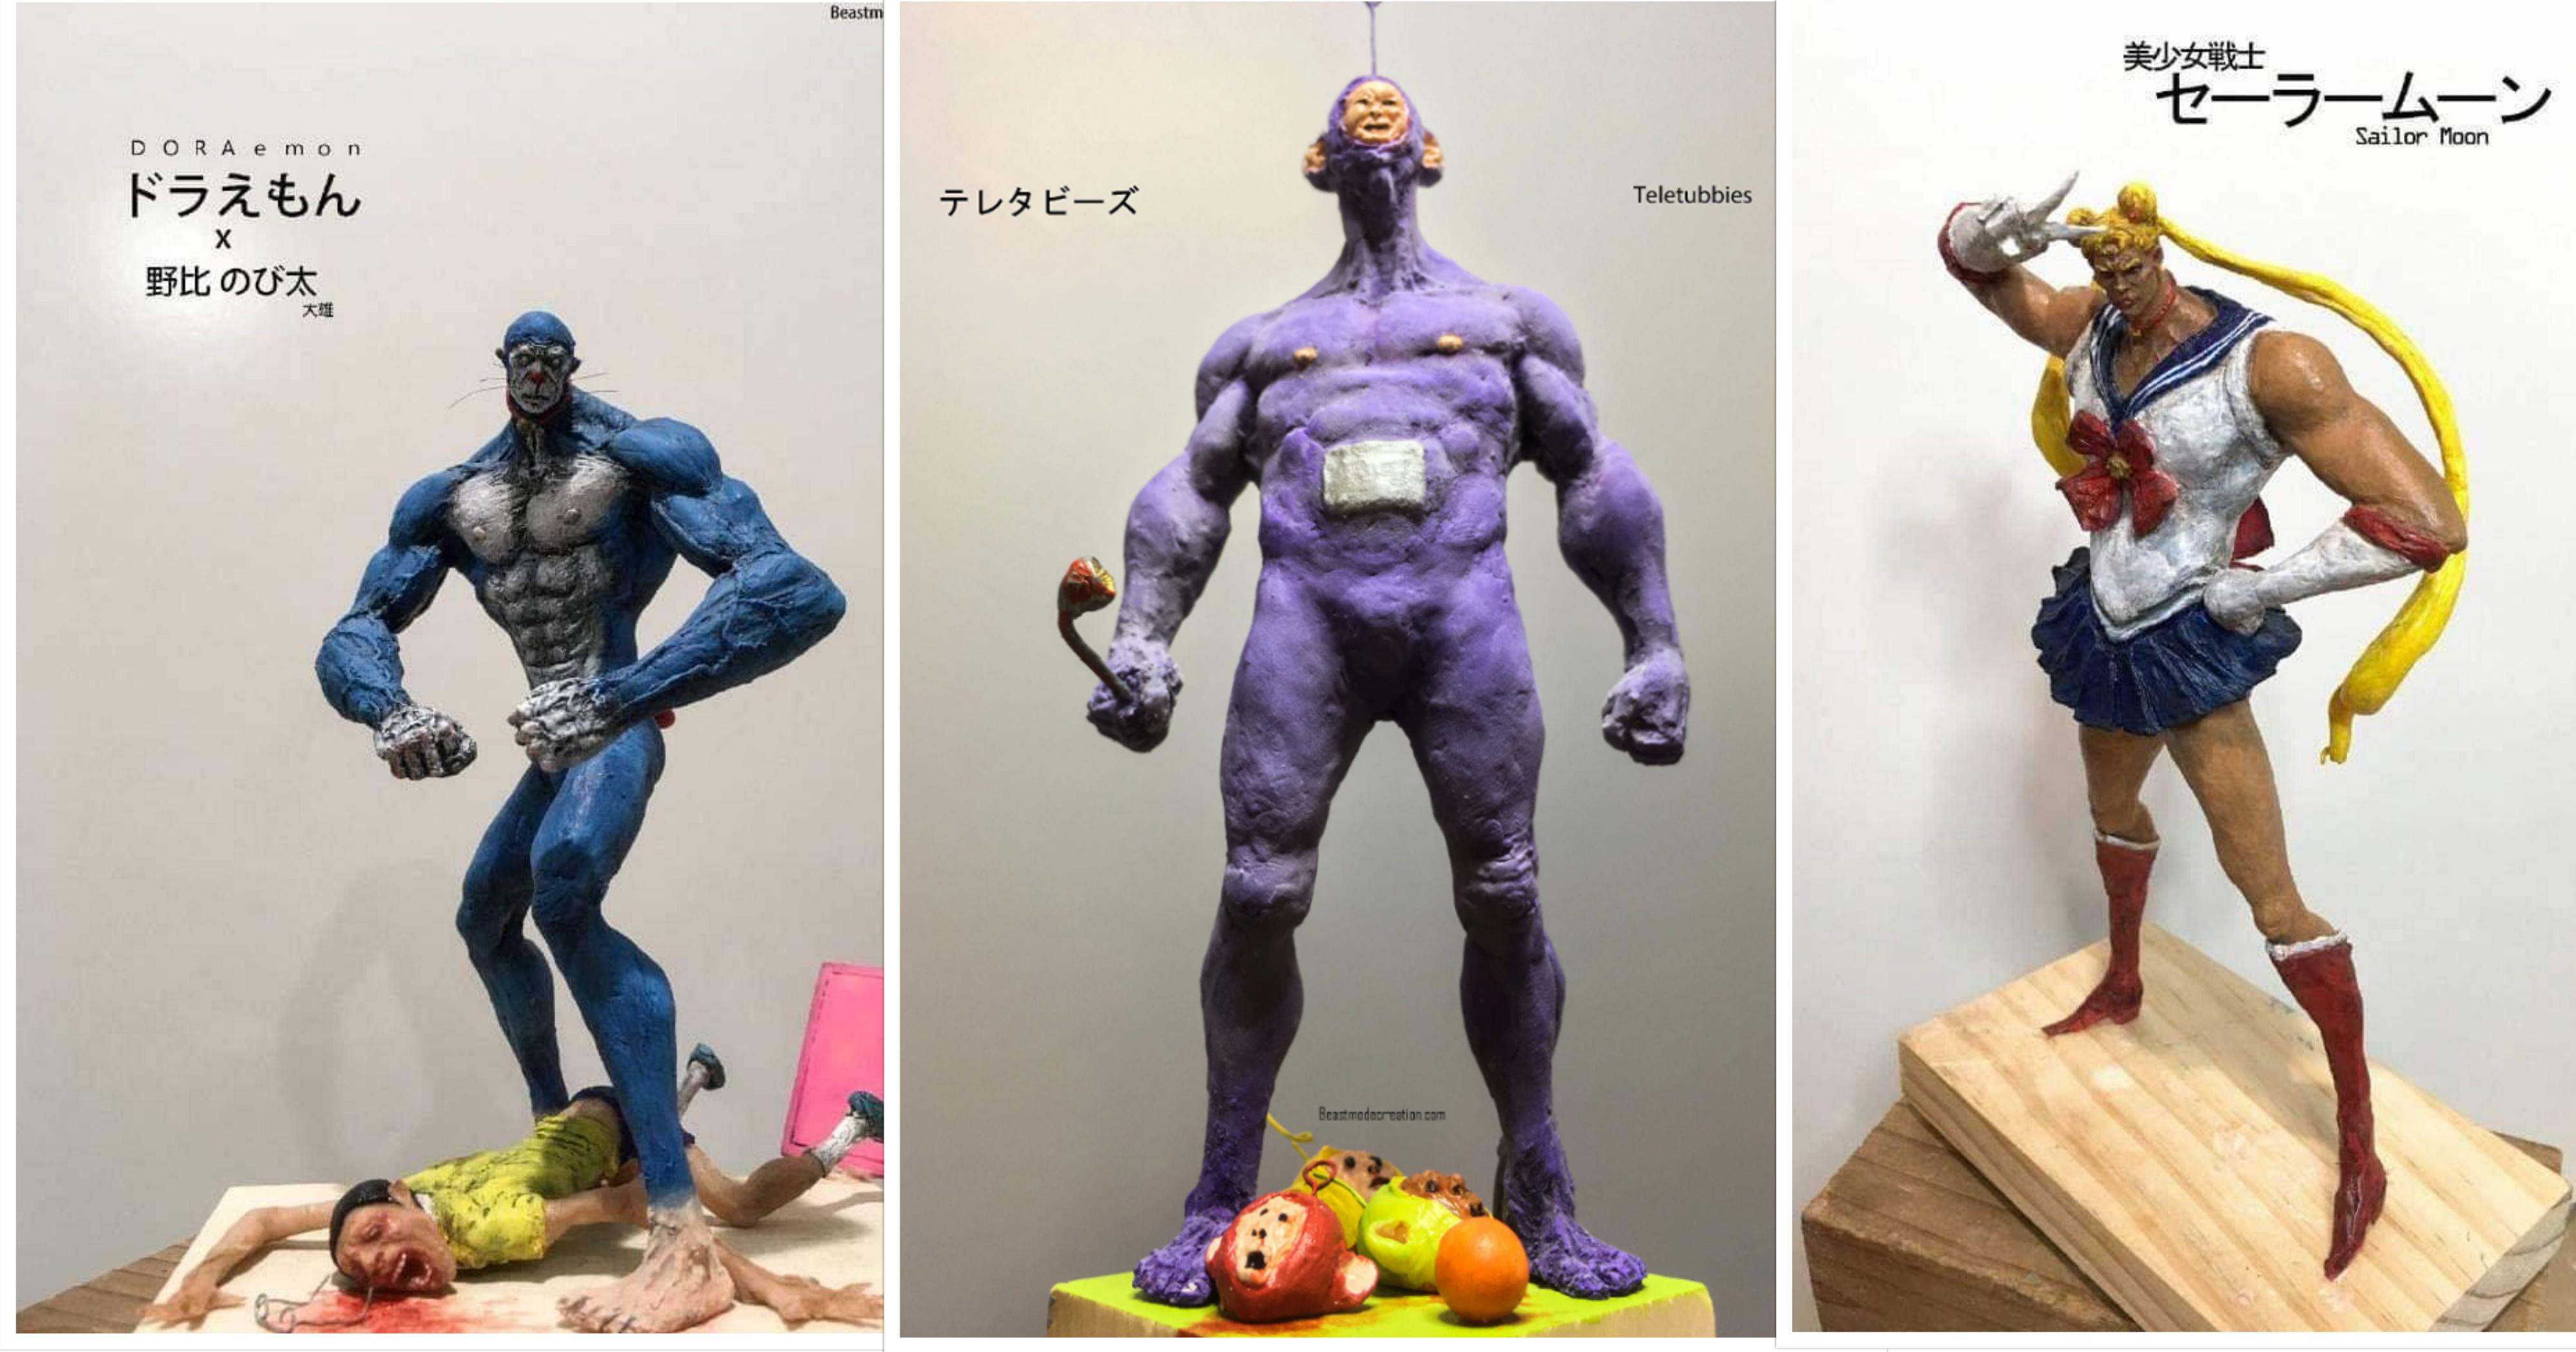 These anime & cartoon figurines will ruin your childhood in the best way possible